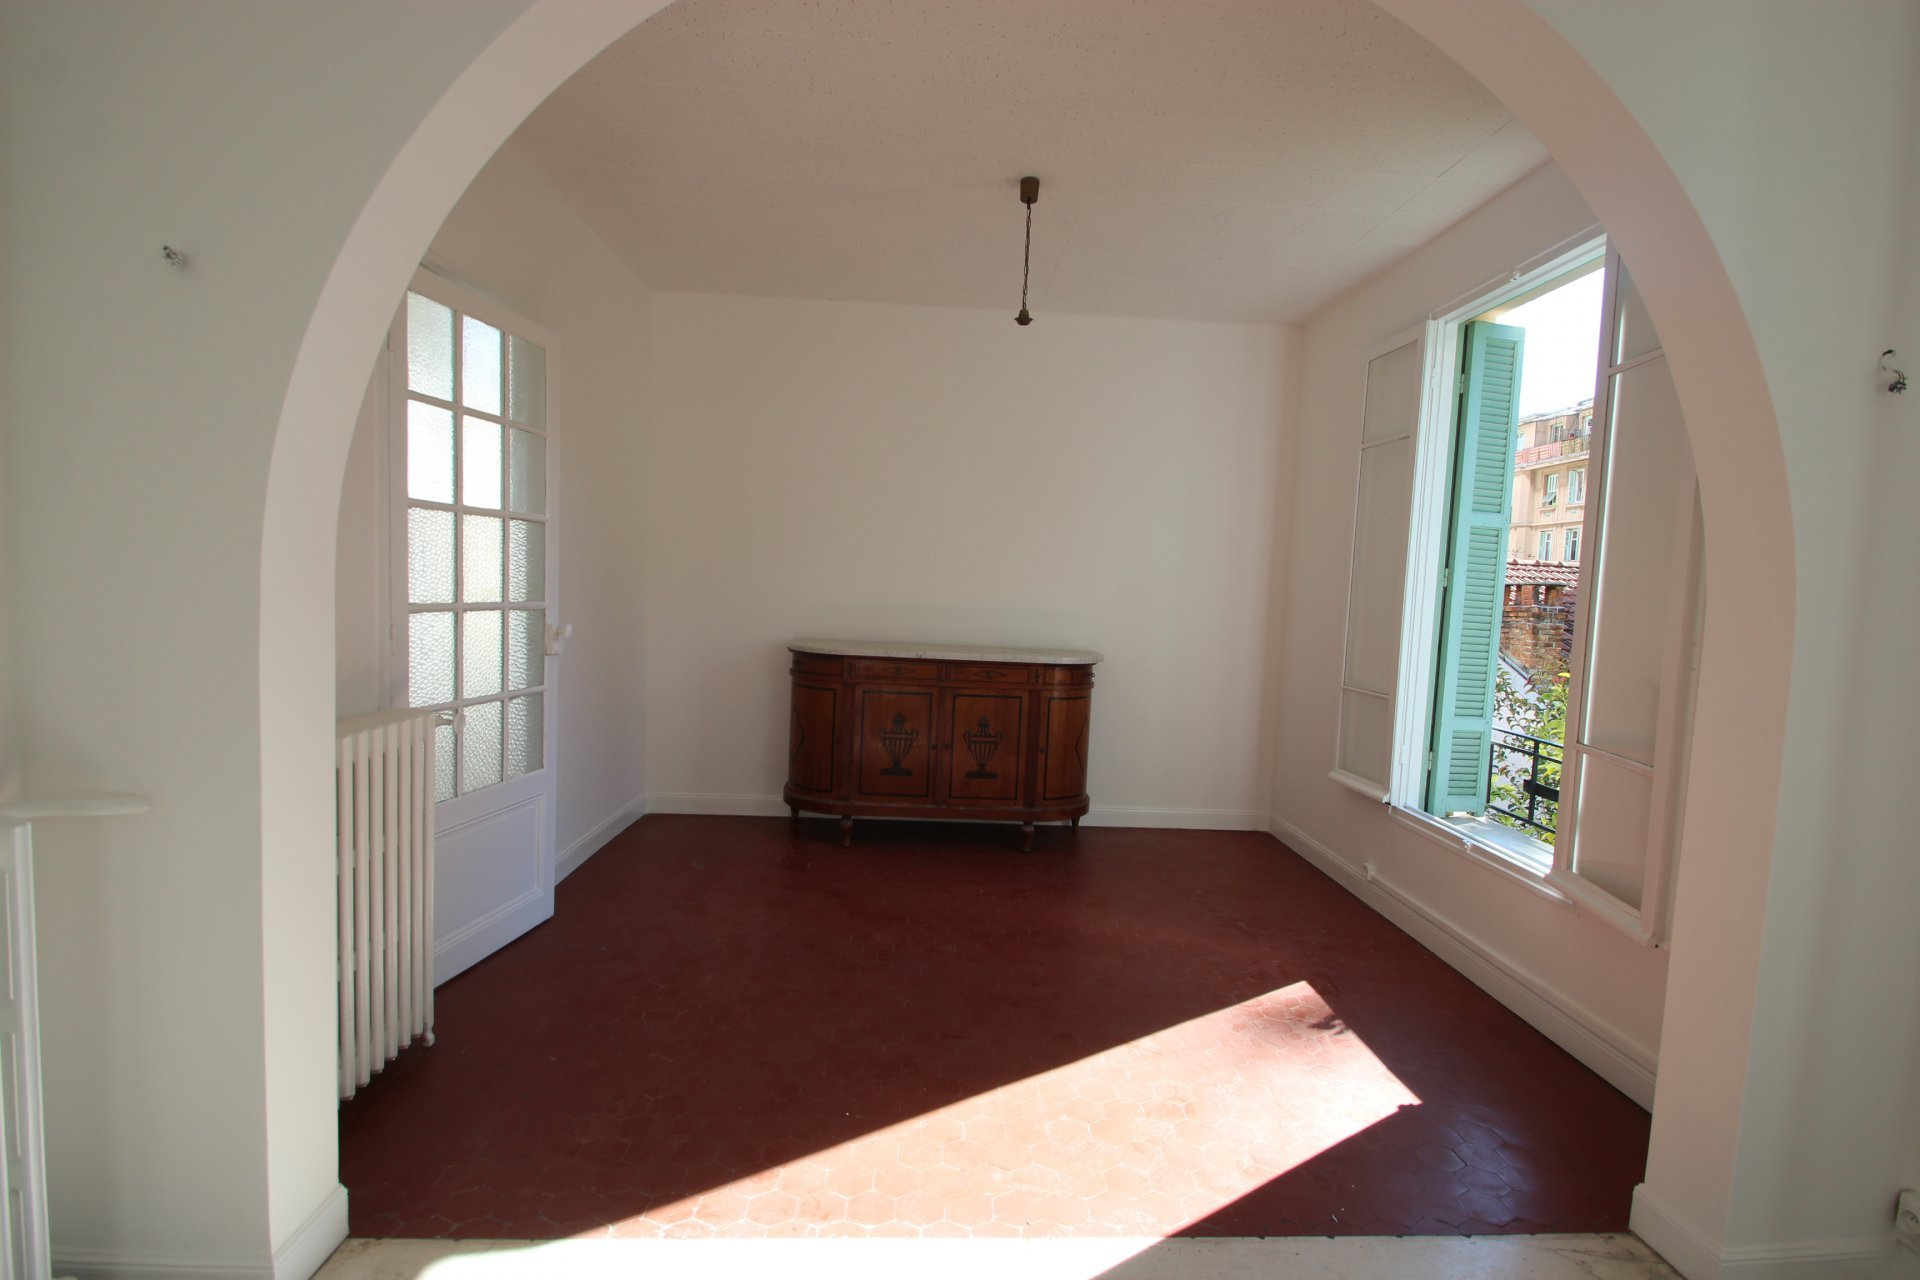 Location appartement 2 pi ces 1 chambre nice nord - Location 3 pieces nice nord ...